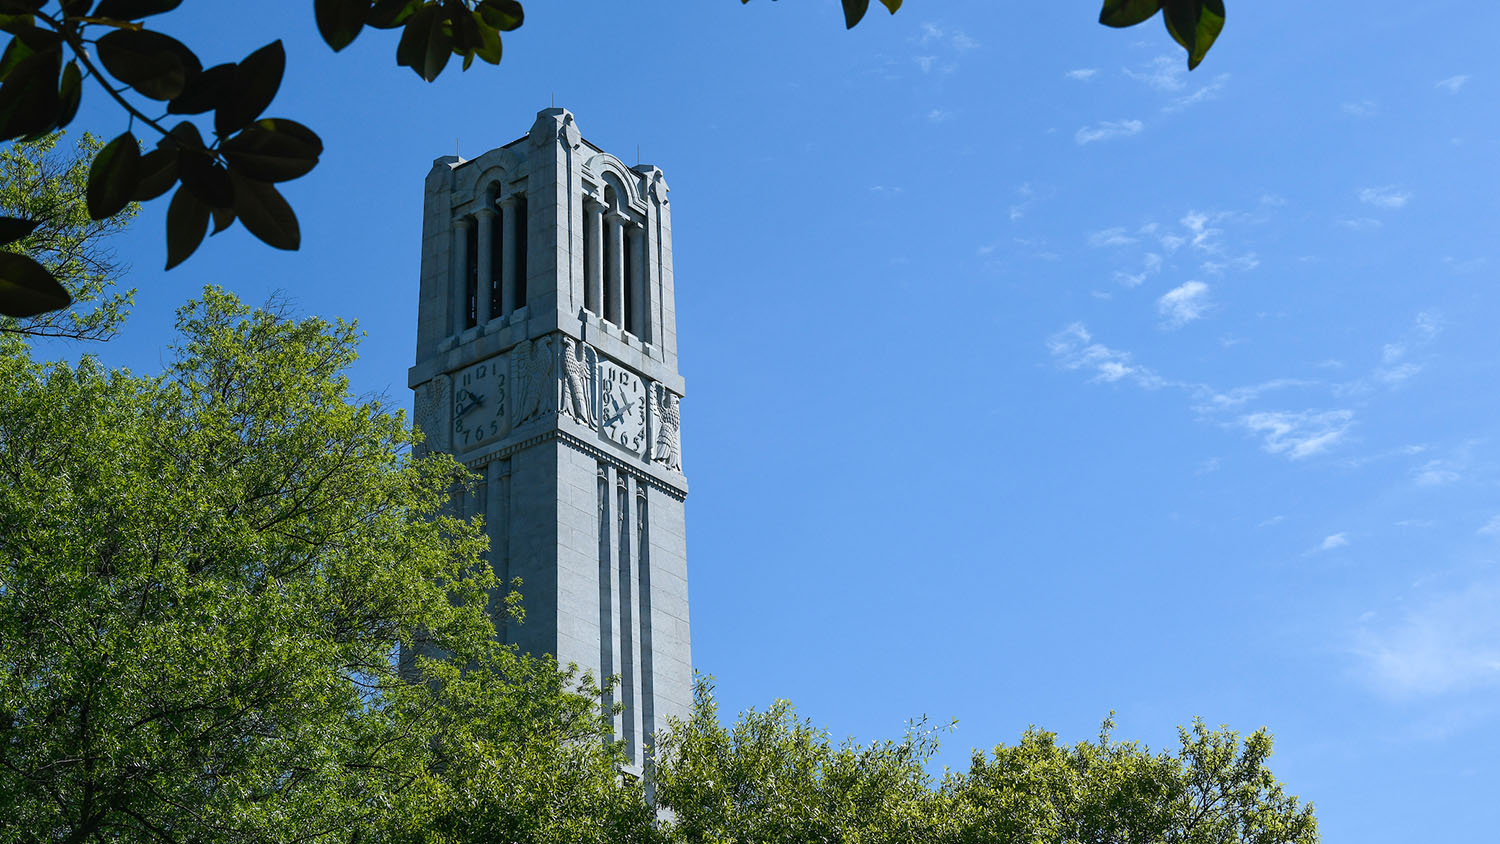 The NC State belltower, framed against a clear sky.